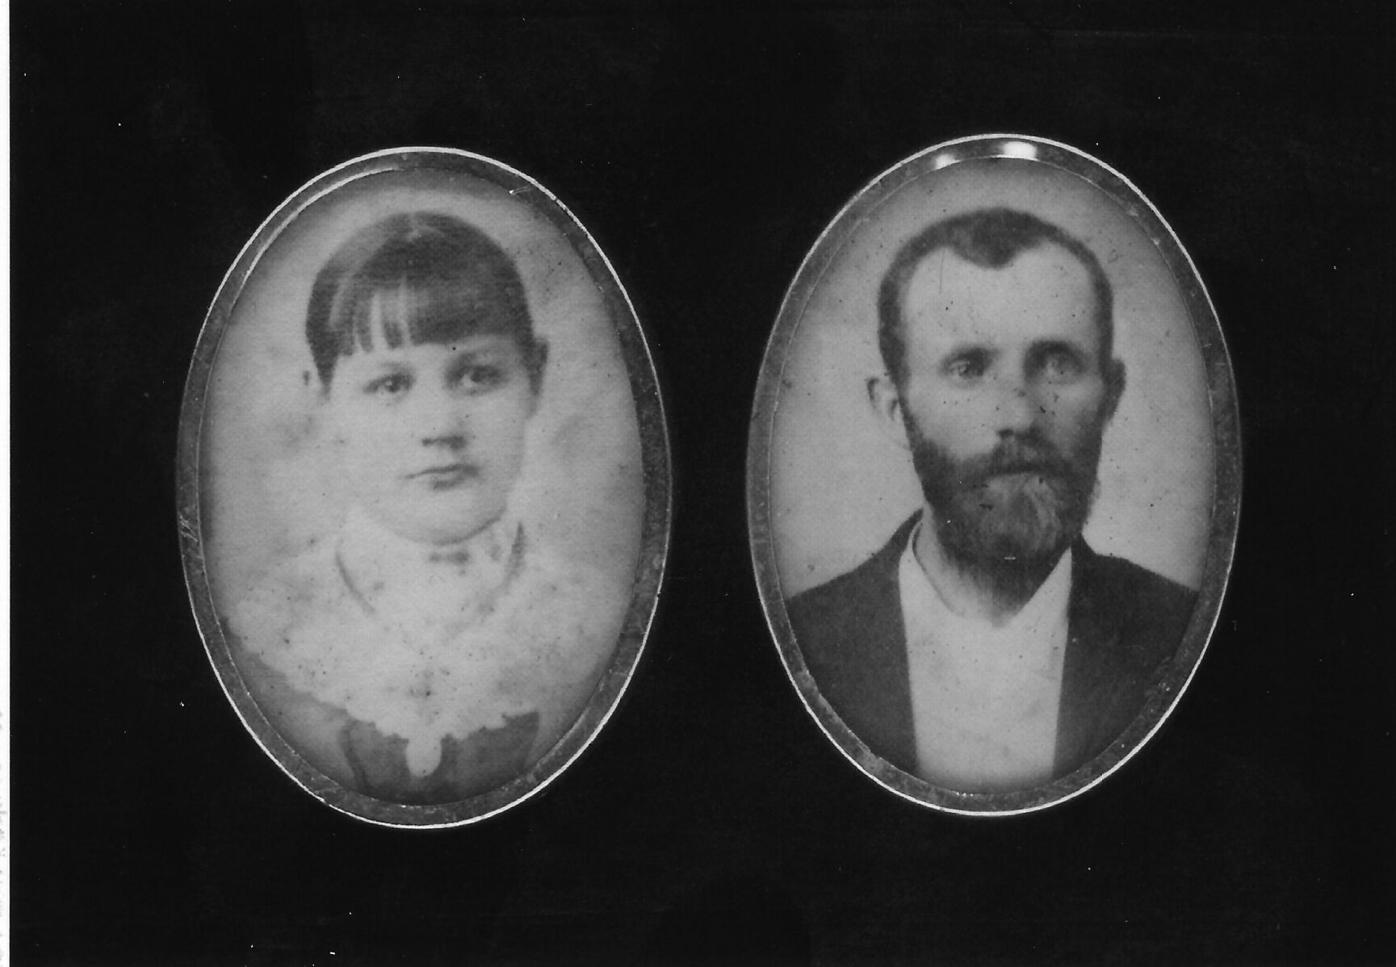 Robert Lewis Thomison and wife, Callie Greer Thomison